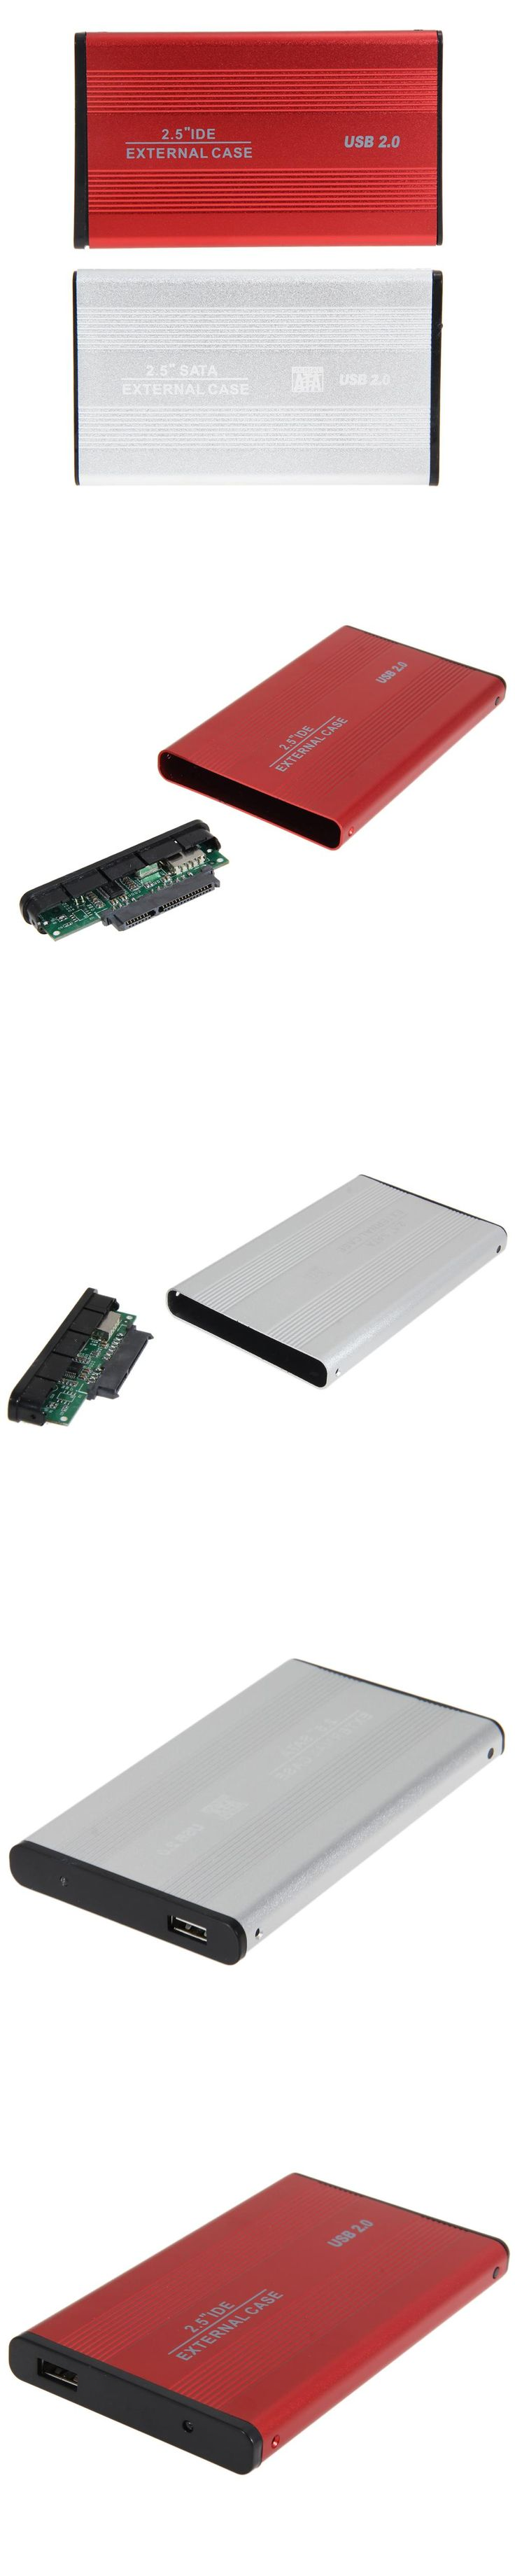 USB 2.0 2.5 inch SATA External Case HDD Enclosure 2.5 inch Hard Driver Enlosure for PC Laptop Hard Disk